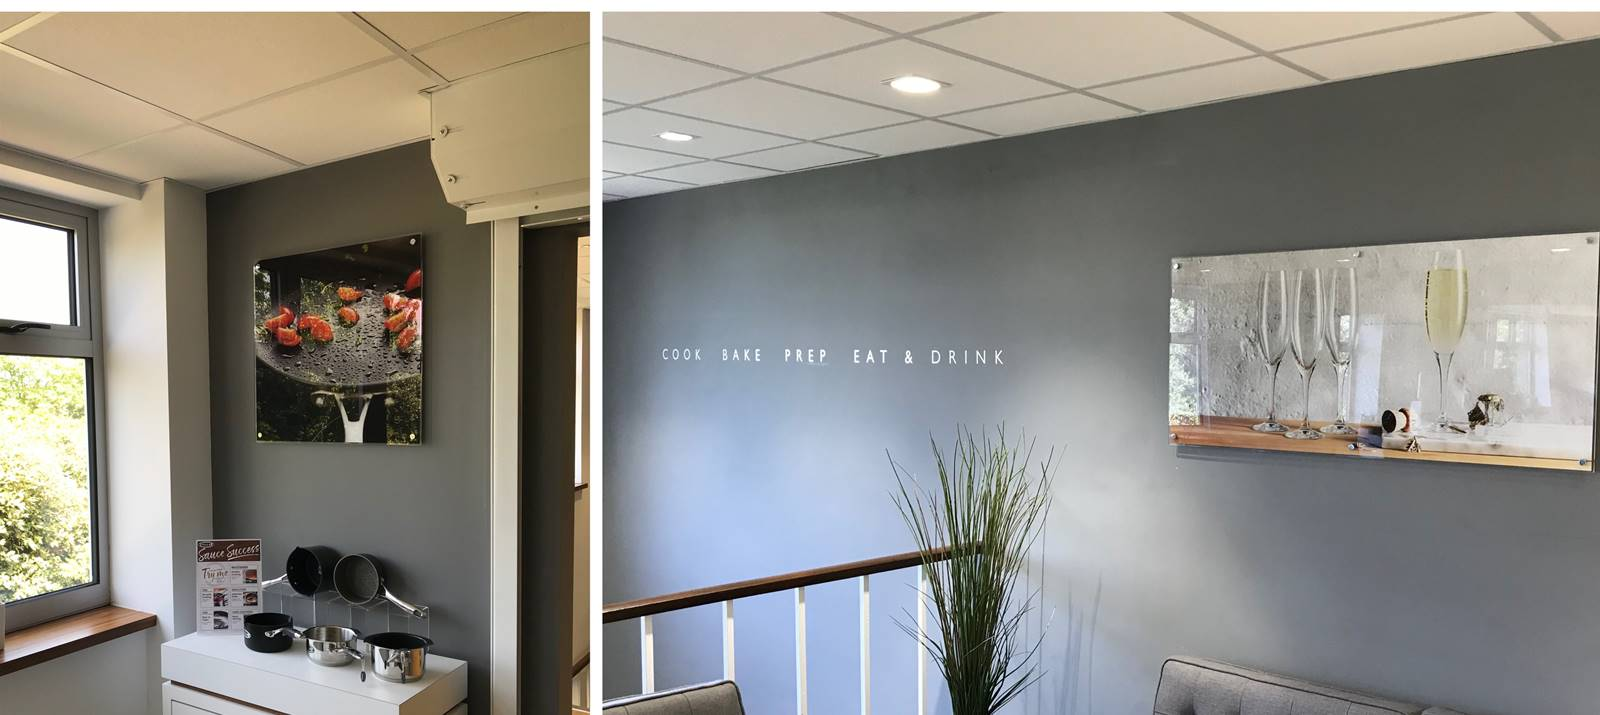 Interior signs and graphics from Signs Express